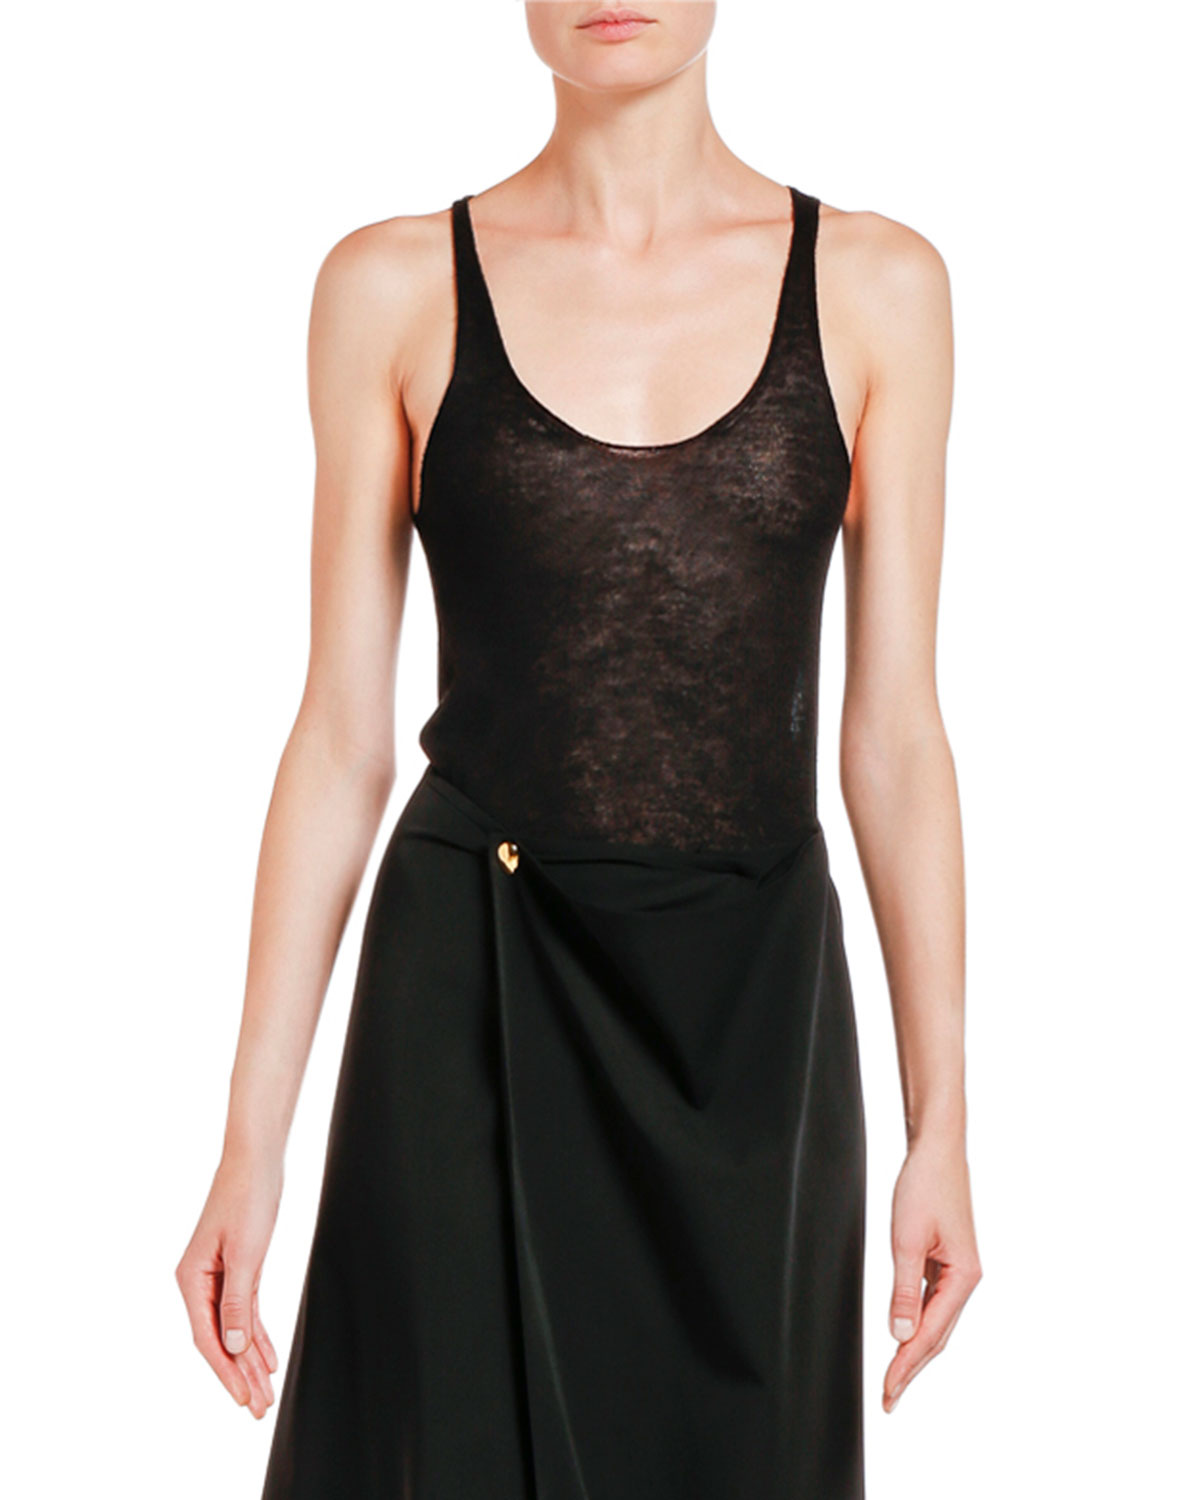 Bottega Veneta Cashmere Scoop-Neck Camisole